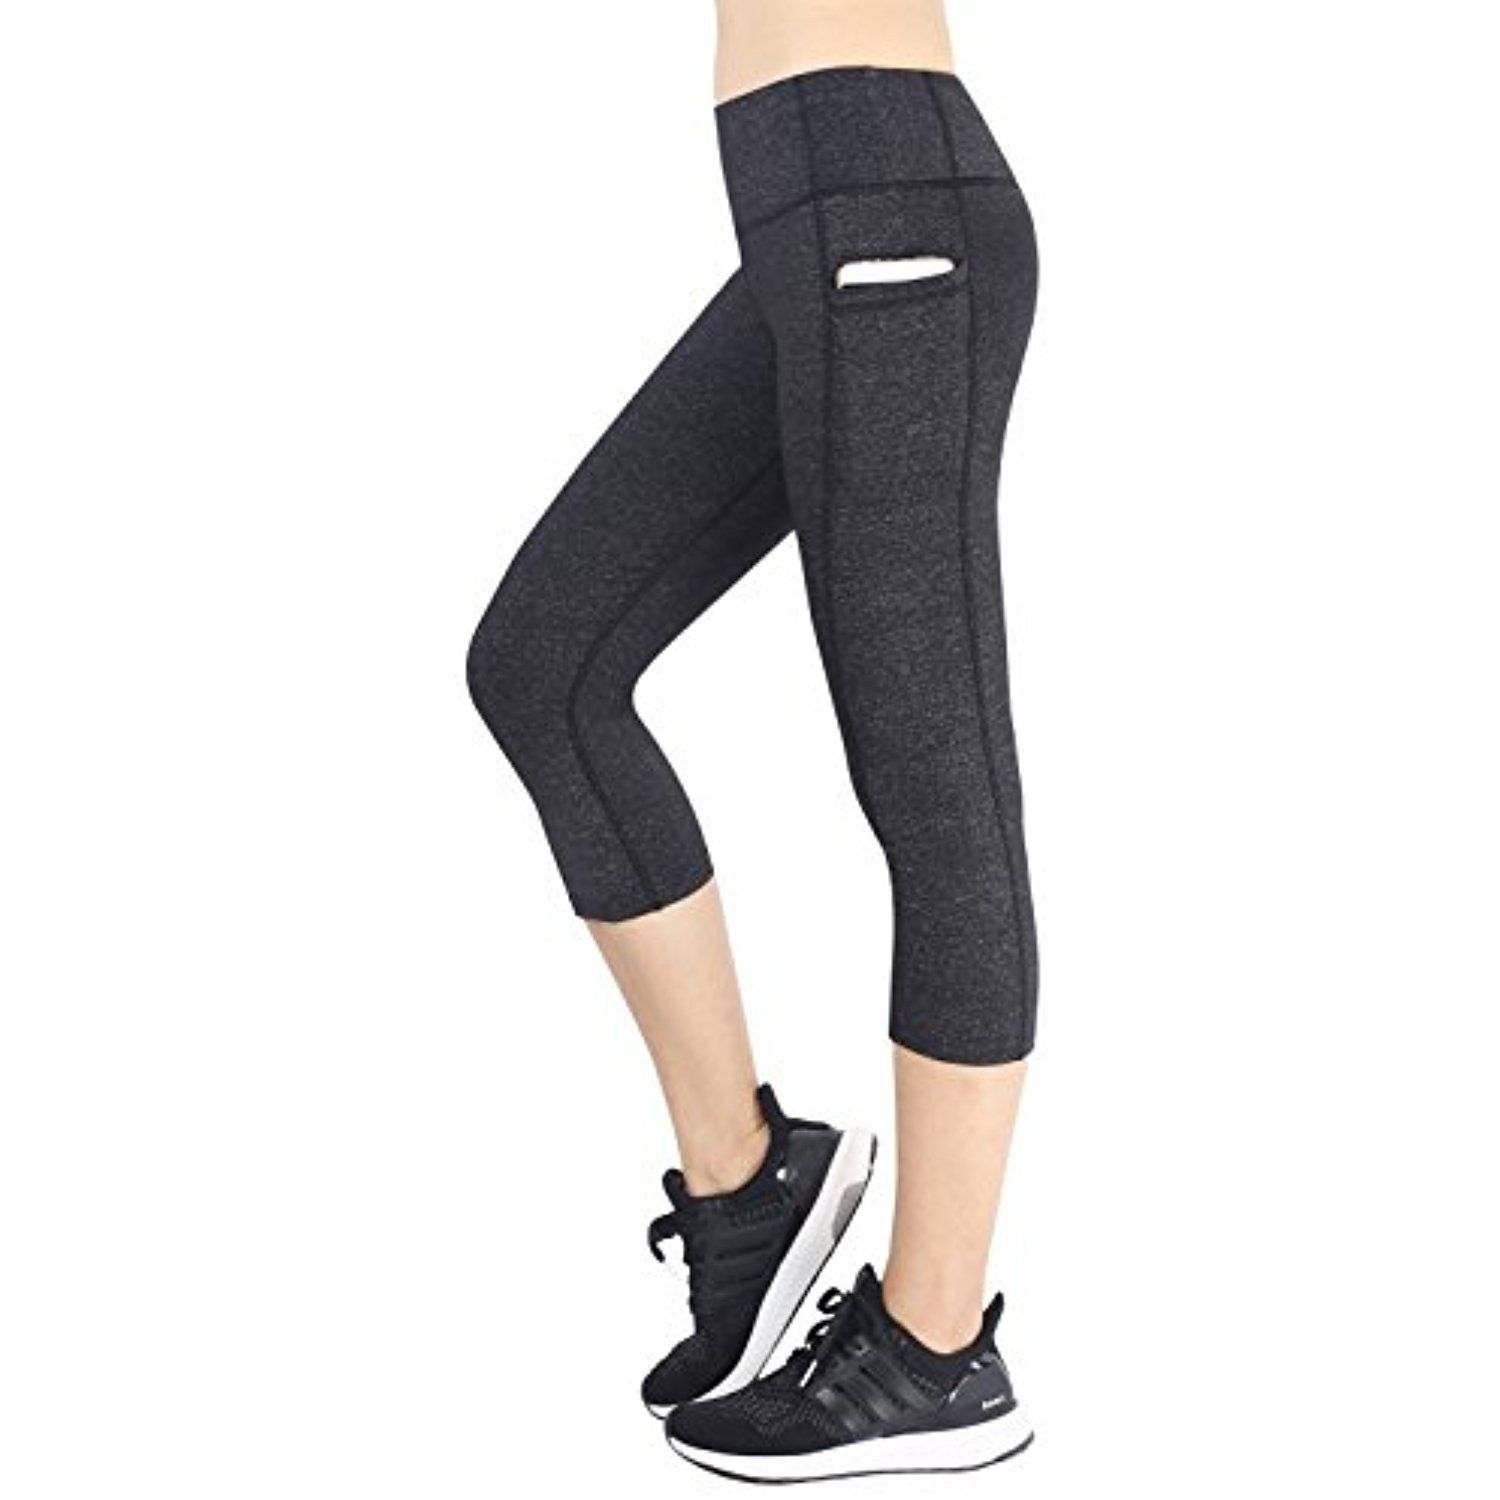 e30156d319206 Neonysweets Women's Ladies Workout Leggings With Pocket Running Yoga Pants  Ankle Tights *** Click image to review more details. (This is an affiliate  link ...